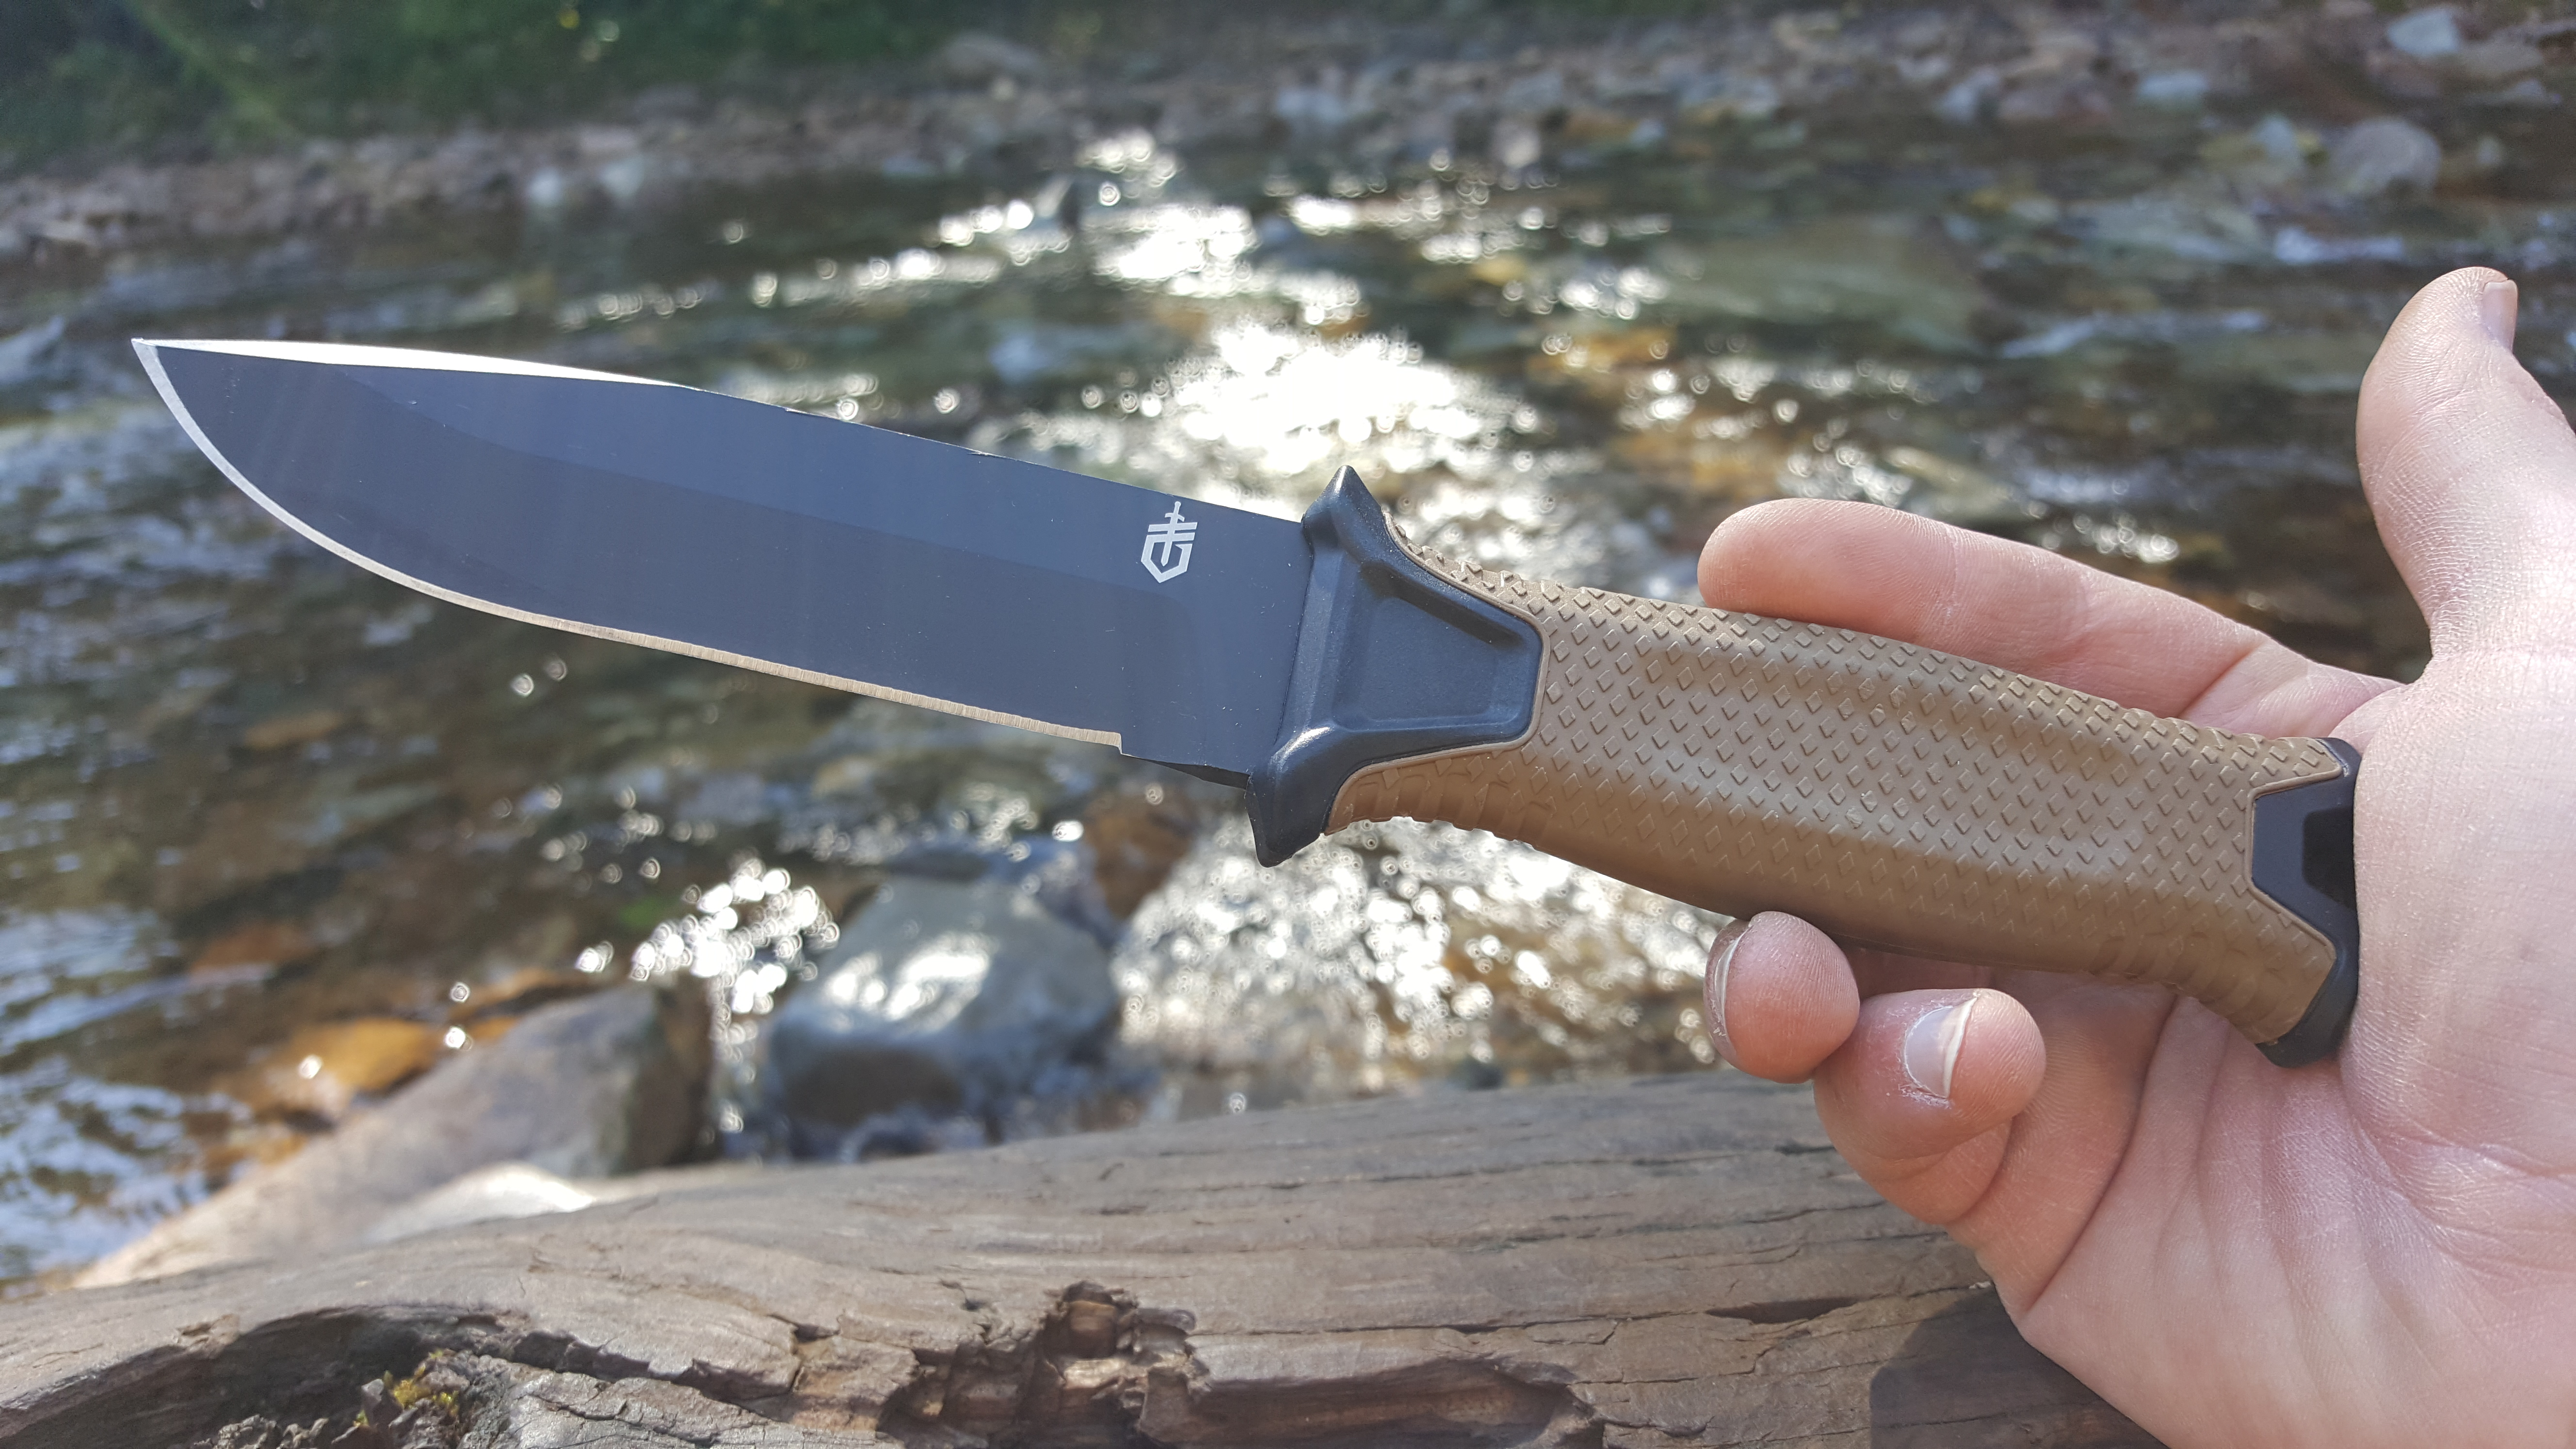 American Muscle: The Gerber StrongArm